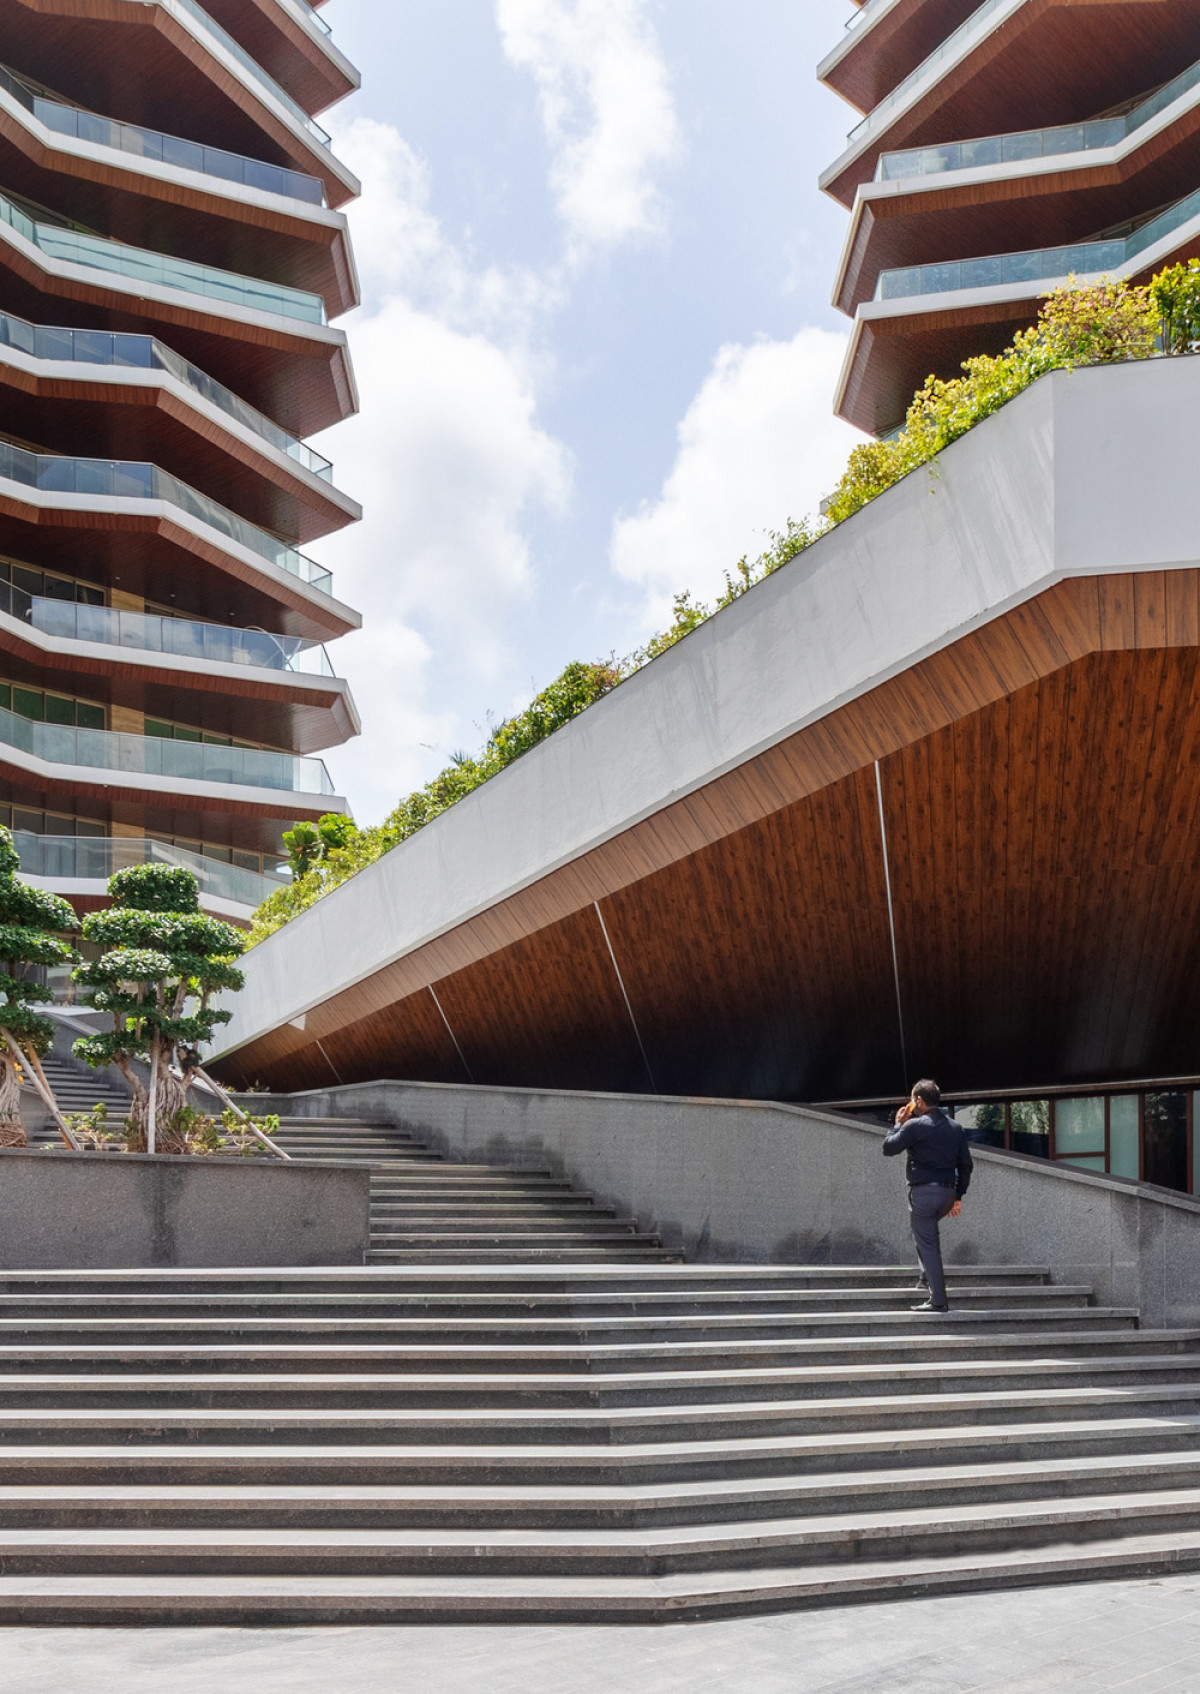 The landscape spaces gradually step down to recreational facilities